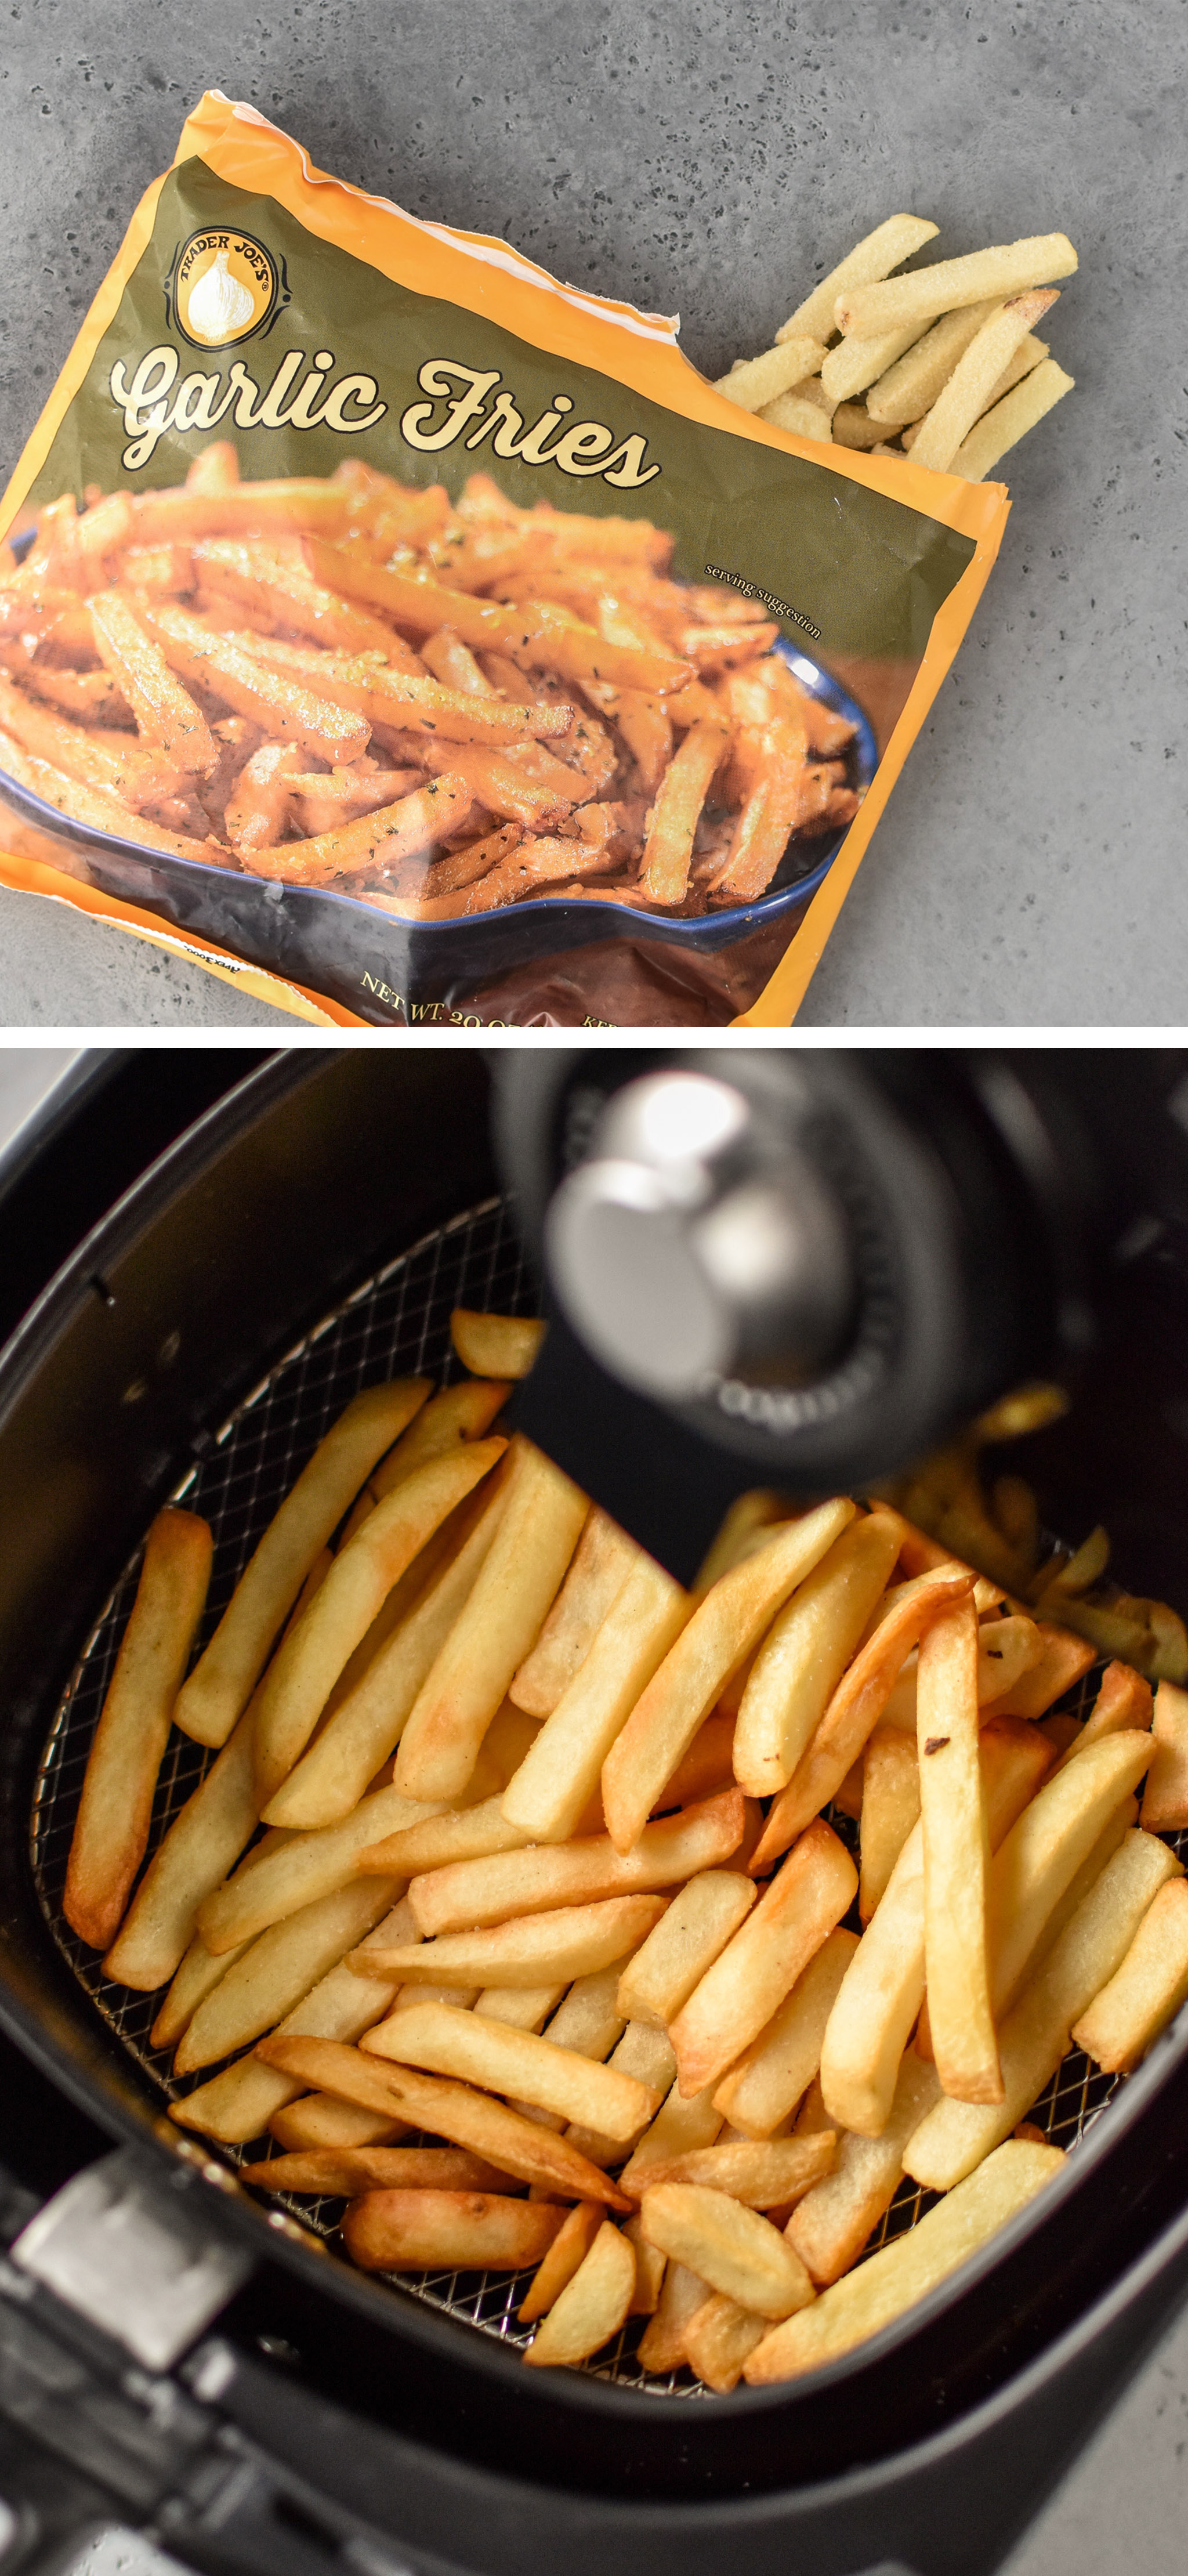 Garlic fries from trader Joe's made in the air fryer!